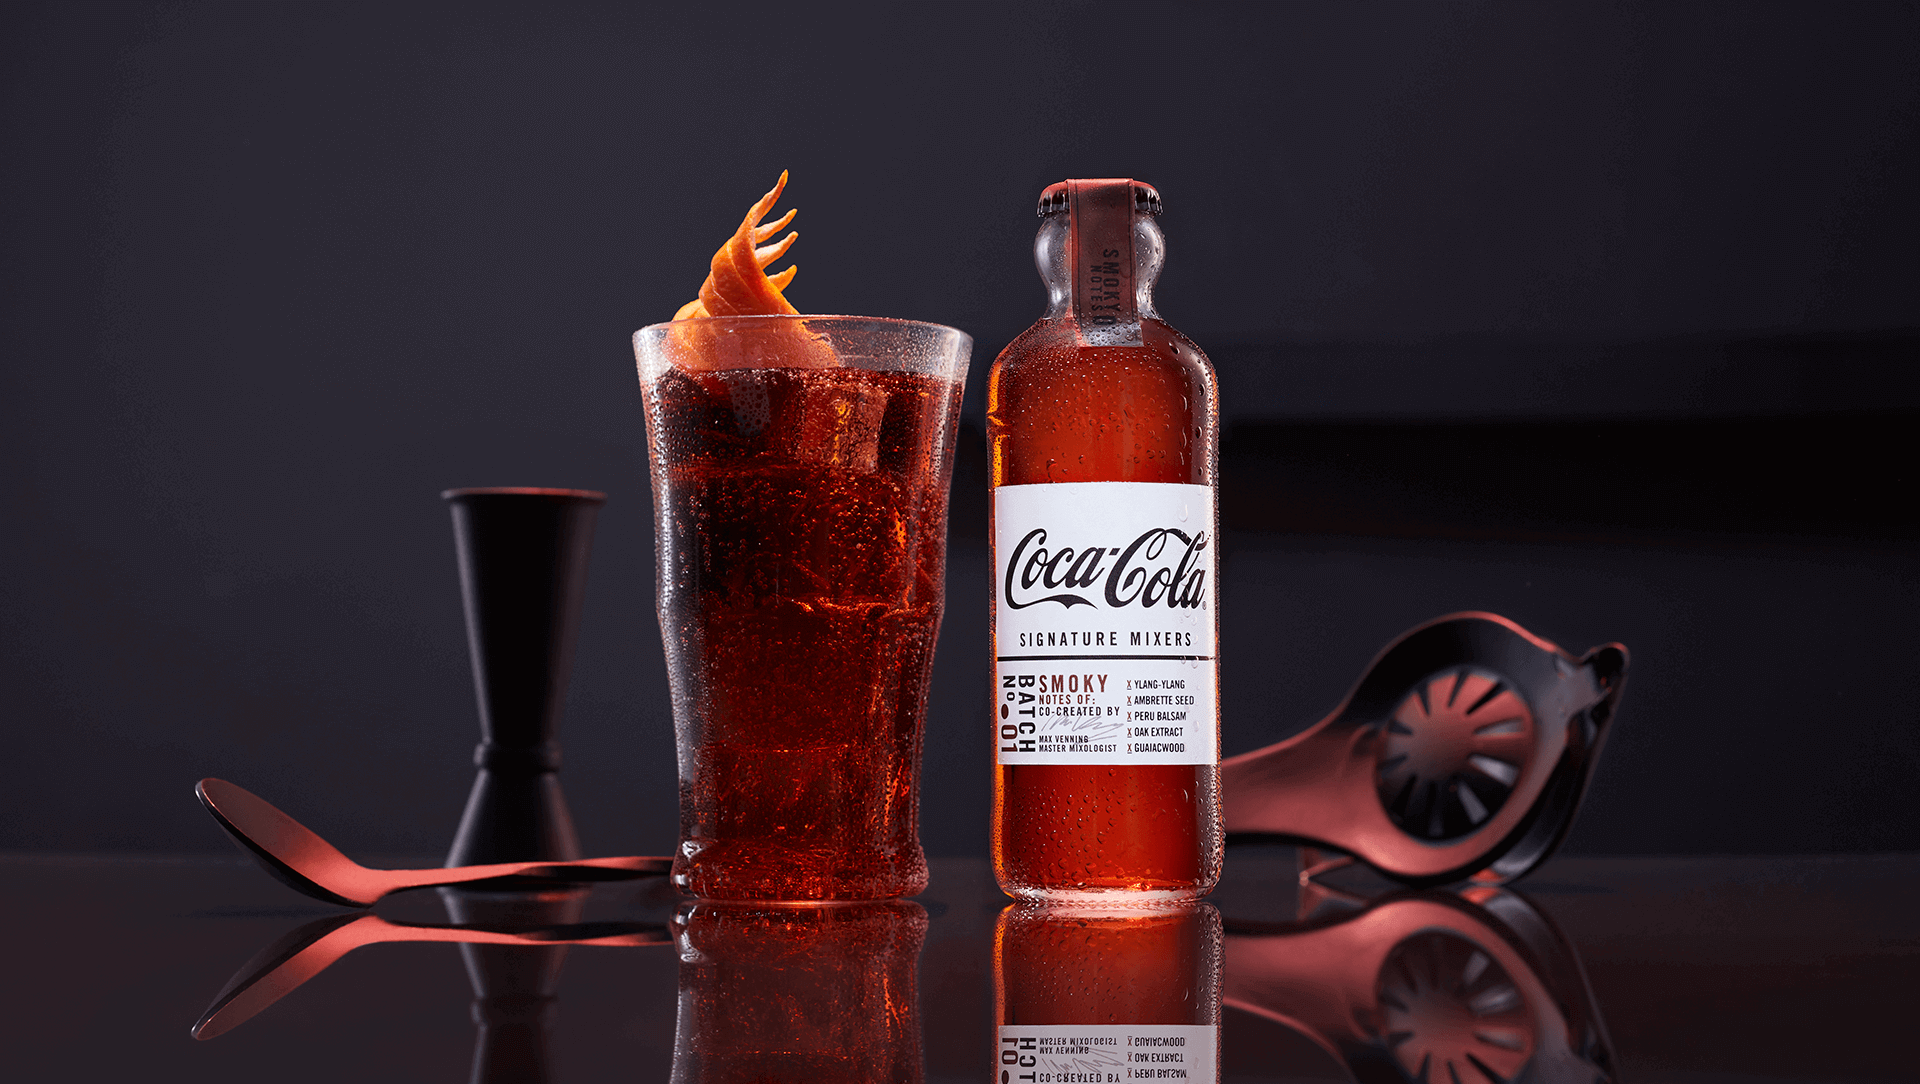 COCA-COLA SIGNATURE MIXERS...